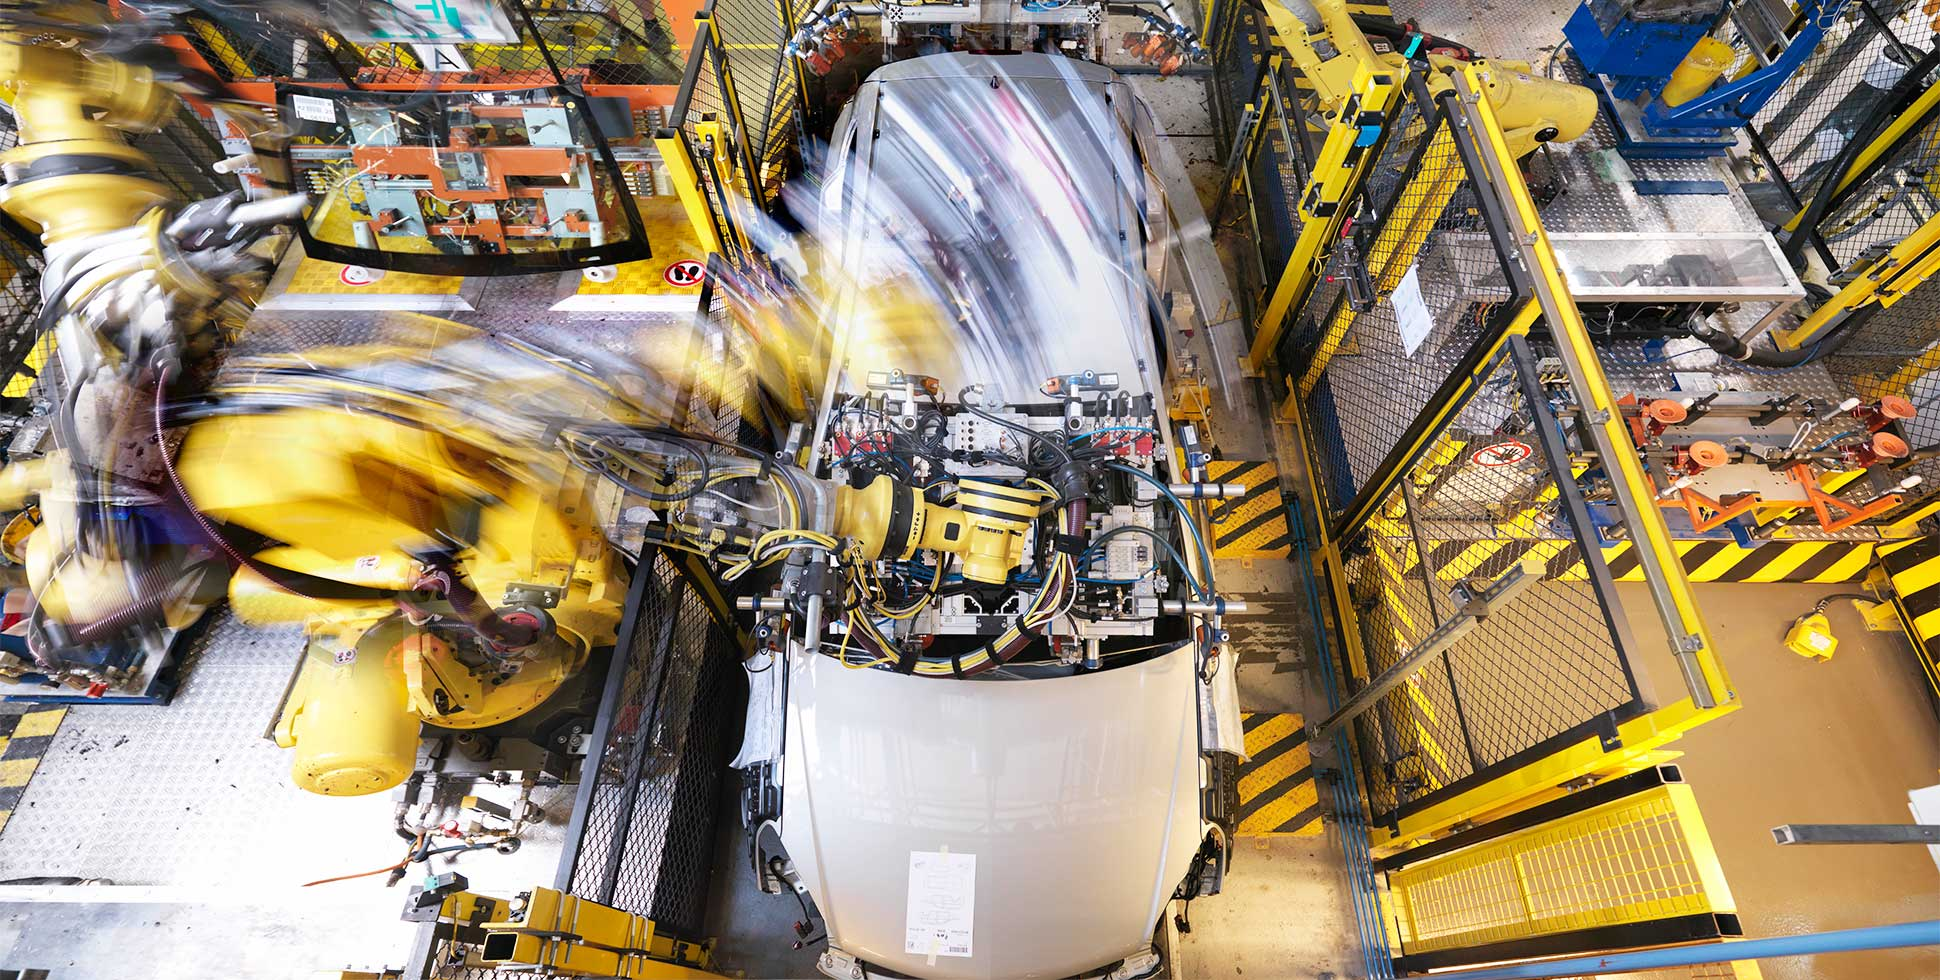 The 'Big Four' in Smart Manufacturing